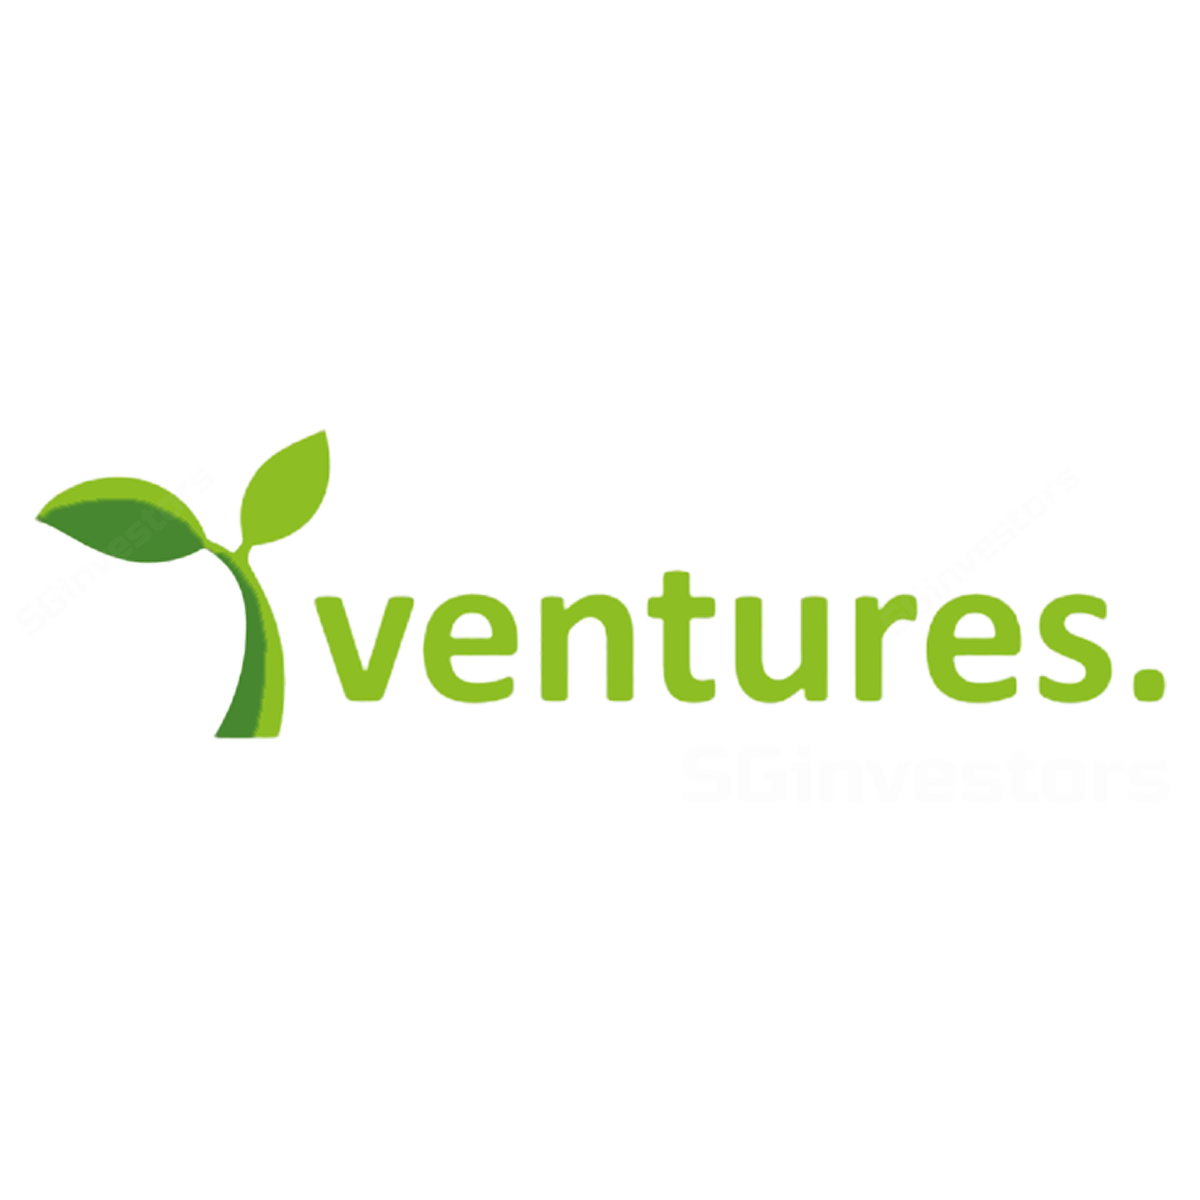 Y Ventures Group Ltd - Phillip Securities Research 2018-08-17: Expecting A Stronger 2h18